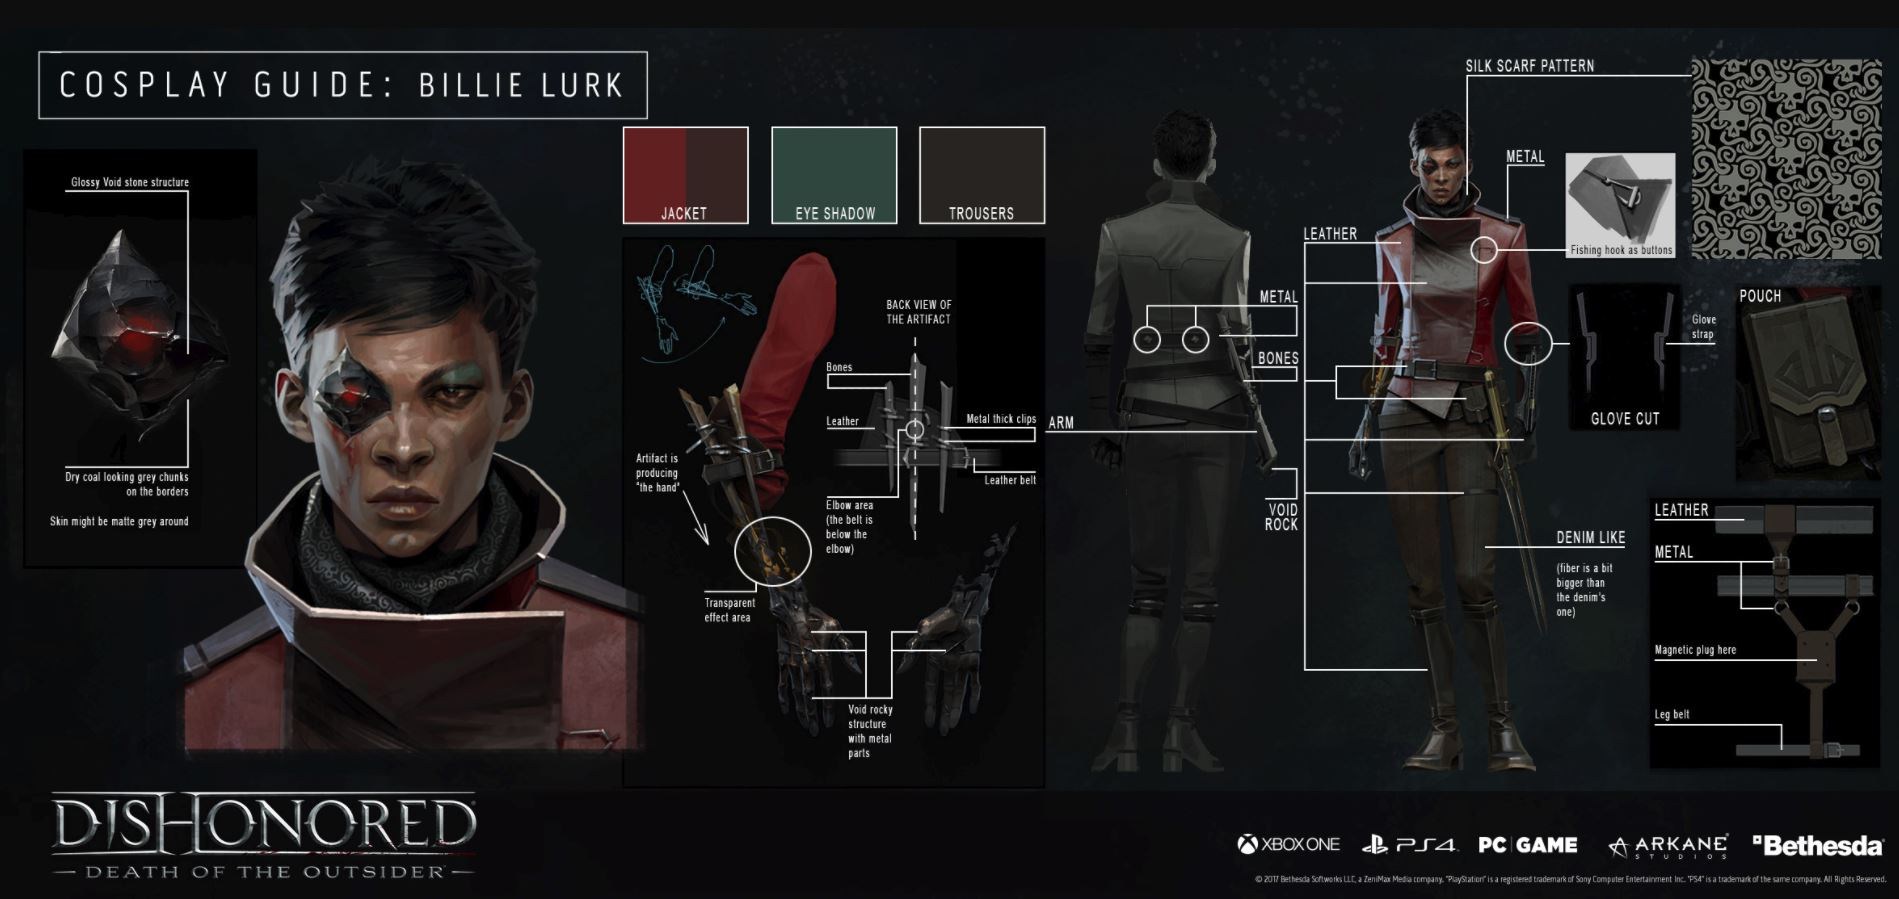 billie lurk look dishonored death of the outsider